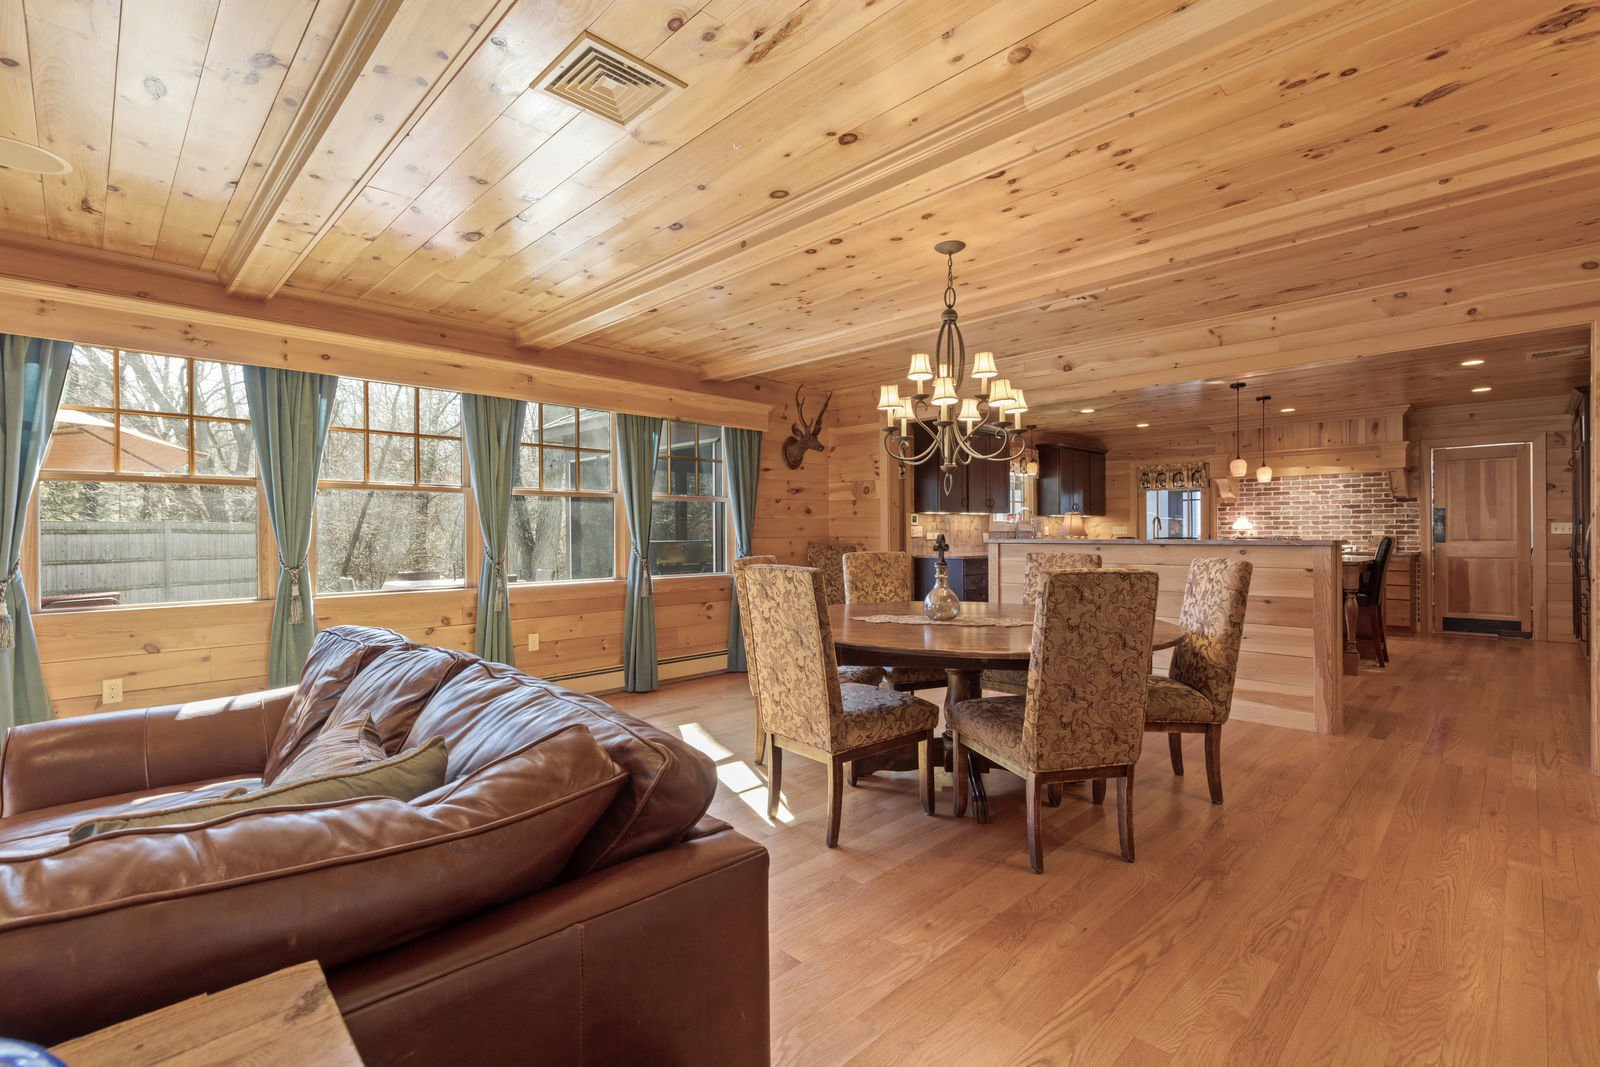 Dining Room, Chair, Table, Ceiling Lighting, and Medium Hardwood Floor  Shingle Style Rustic Chic